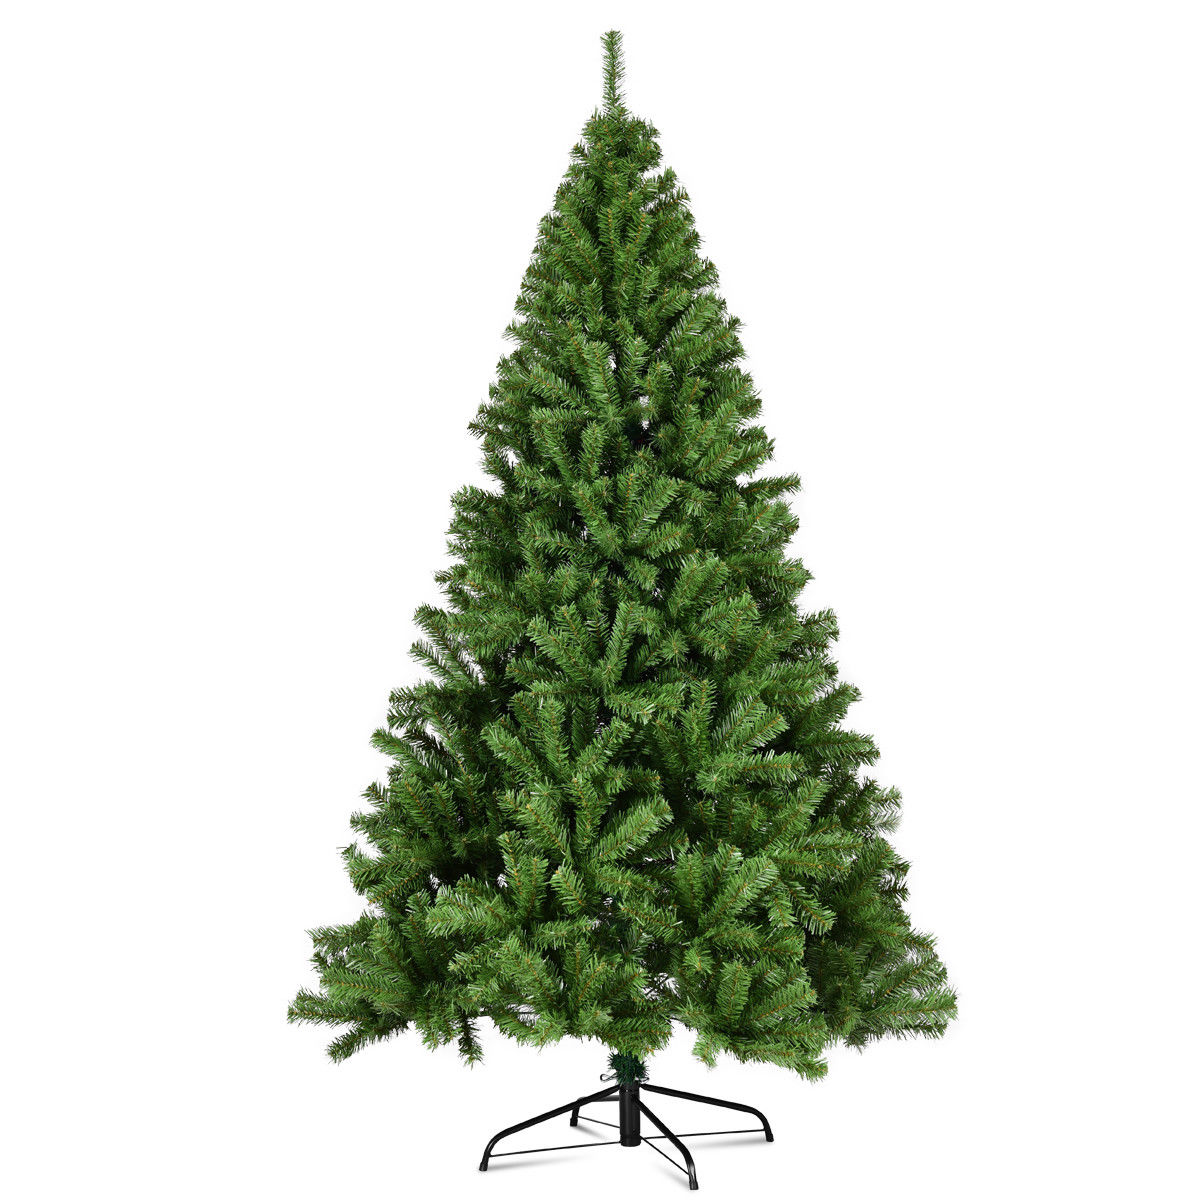 Costway 7.5ft Pvc Artificial Christmas Tree